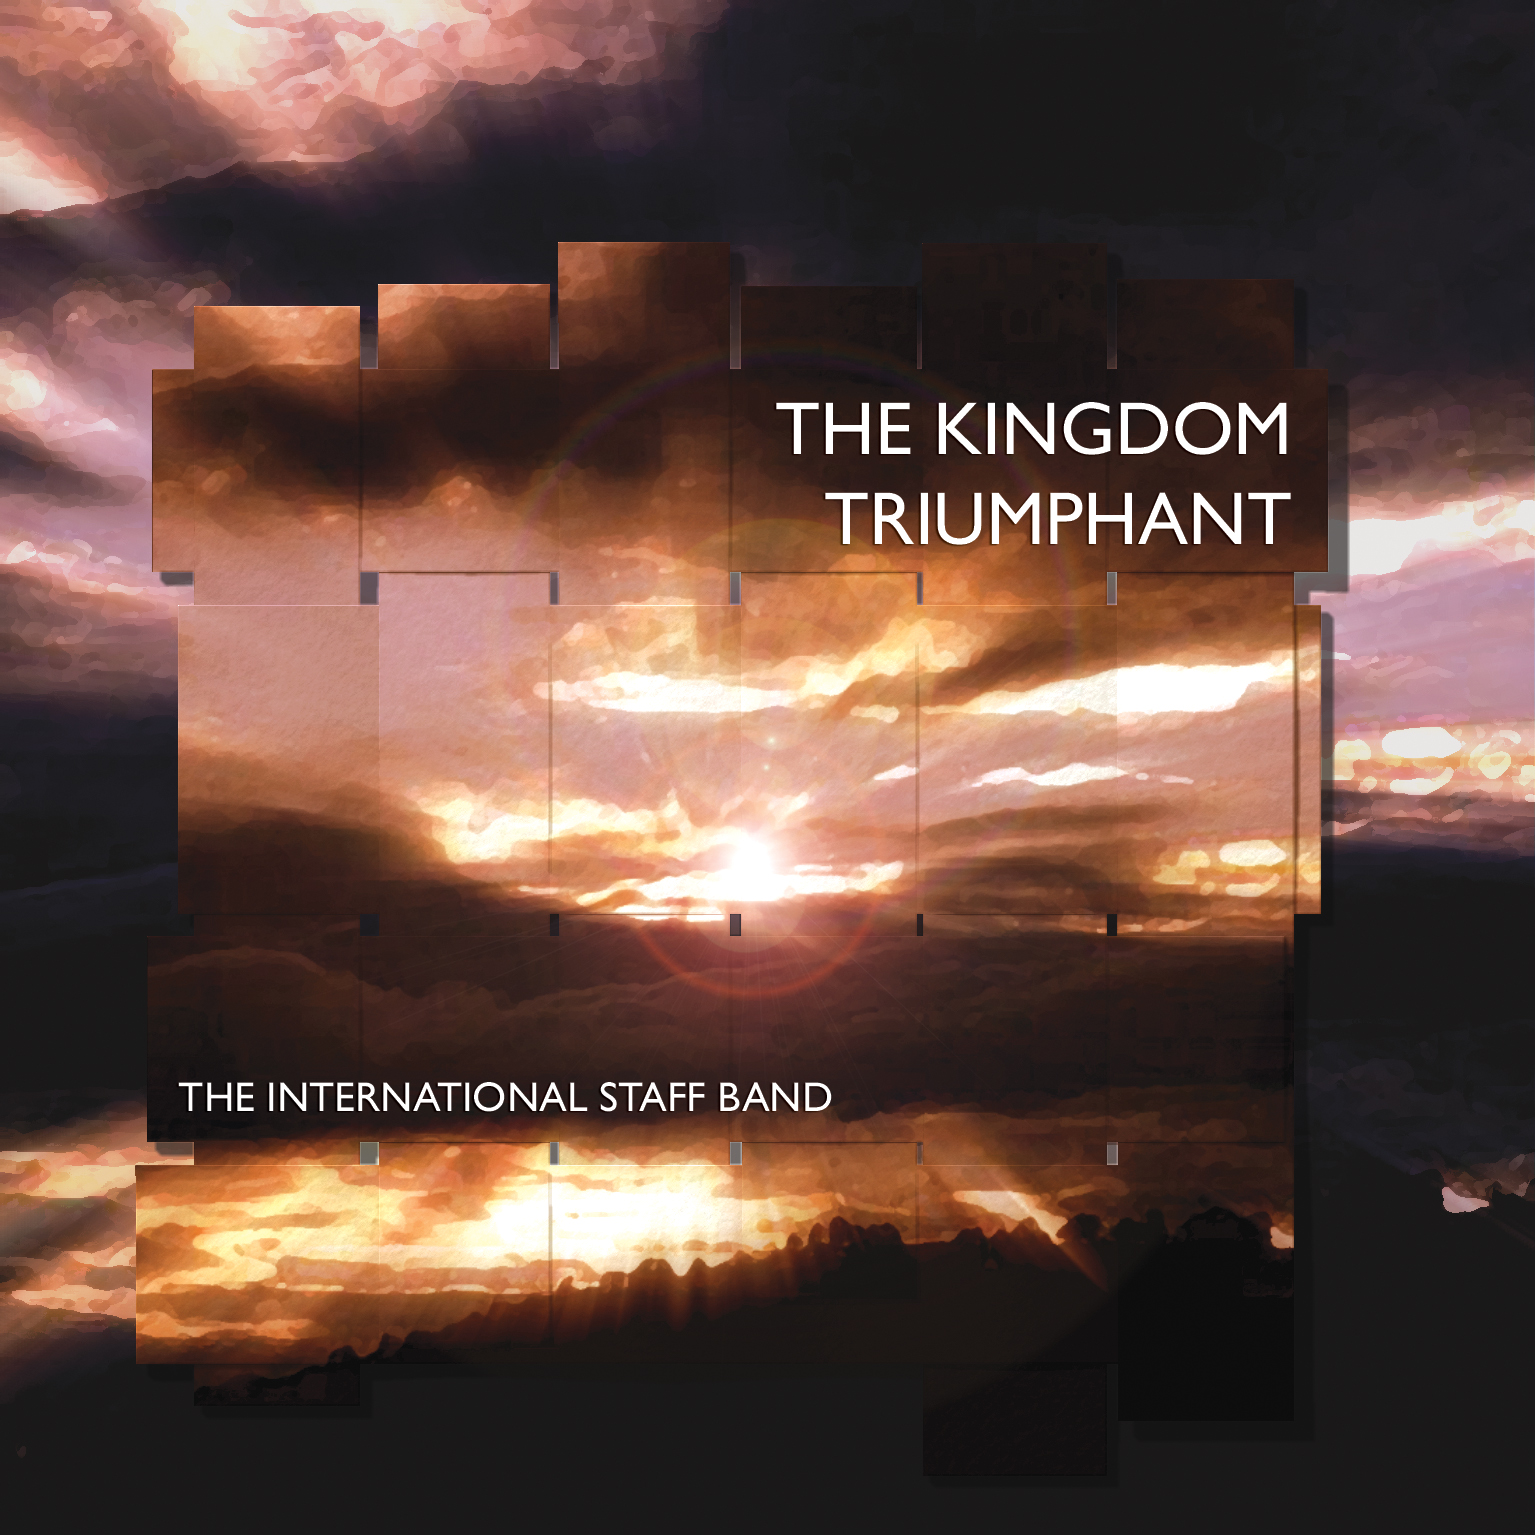 The Kingdom Triumphant - Download